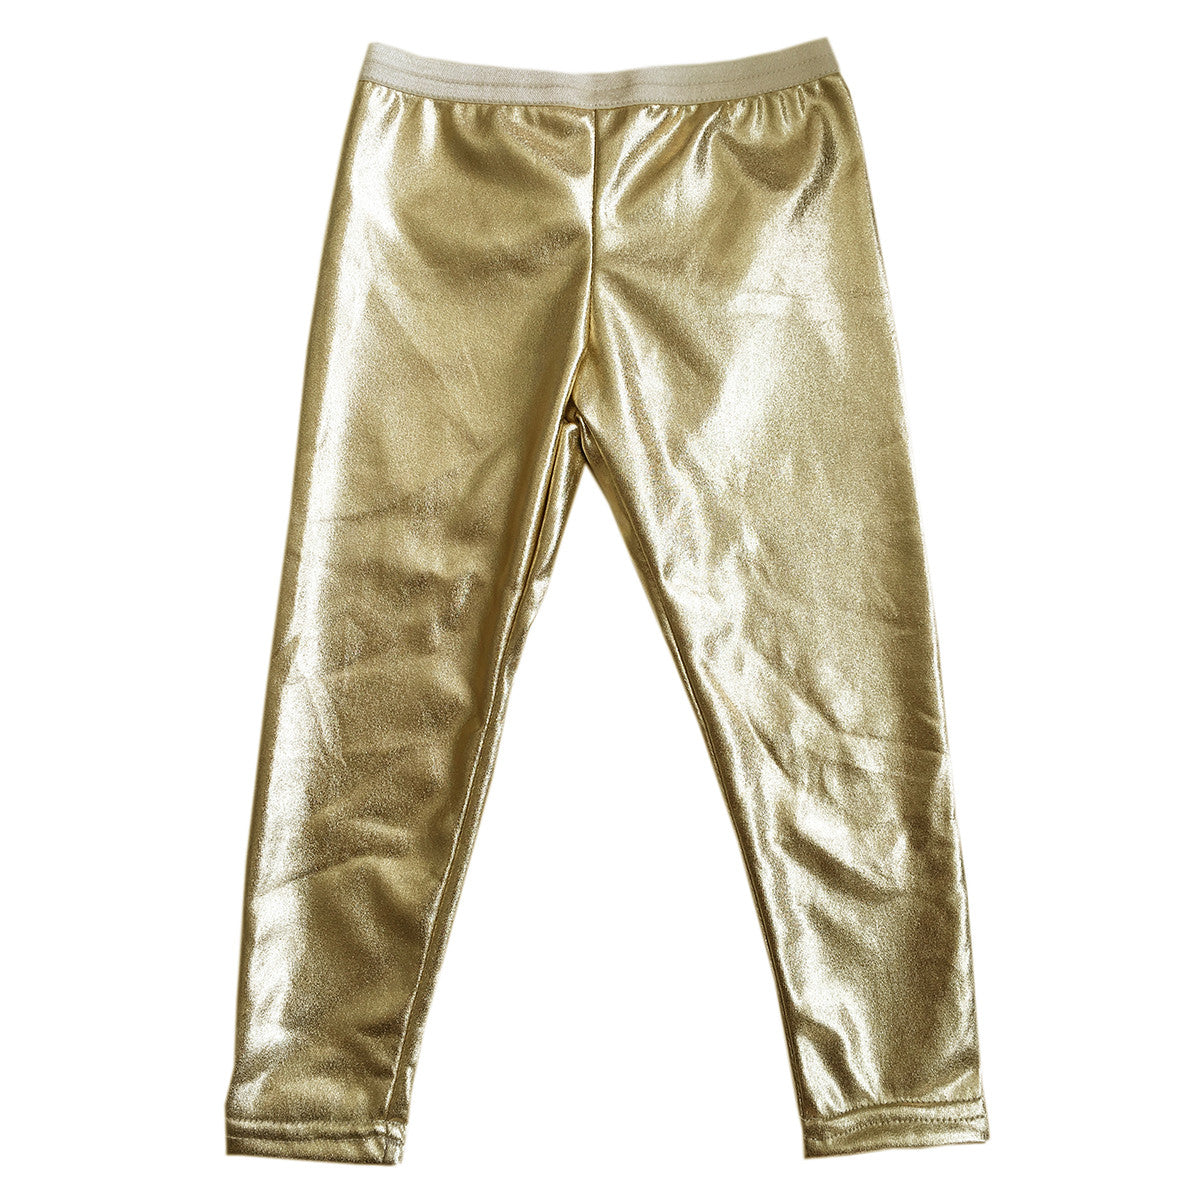 a90d68a38e97d oh baby! Sandy Leggings - Gold - oh baby!